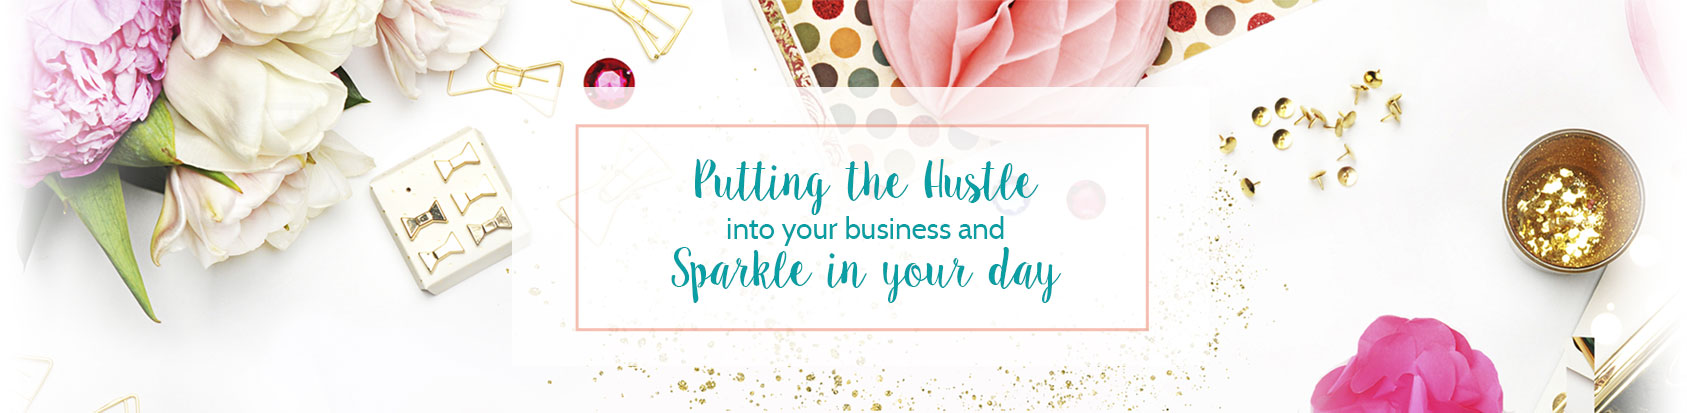 Putting The Hustle Into Your Business And Sparkle In Your Day